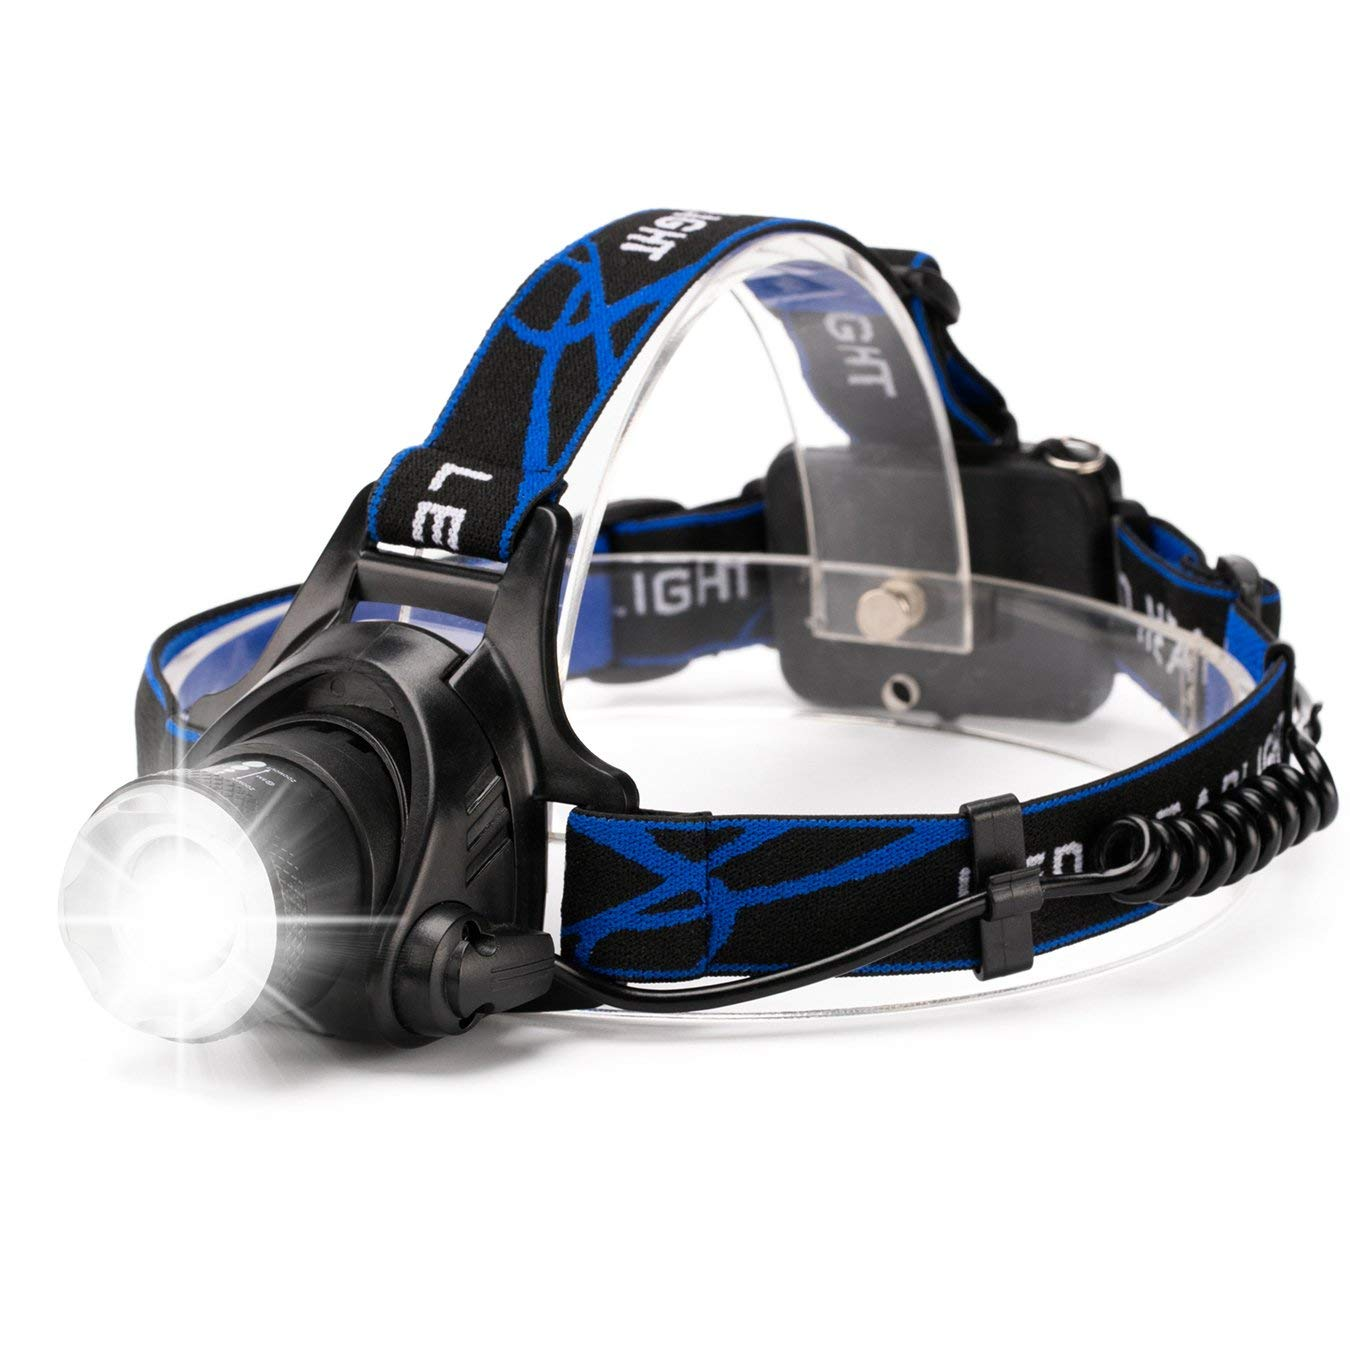 800 Lumen Zoomable Headlamp Torch with 3 Modes | Monthly Madness